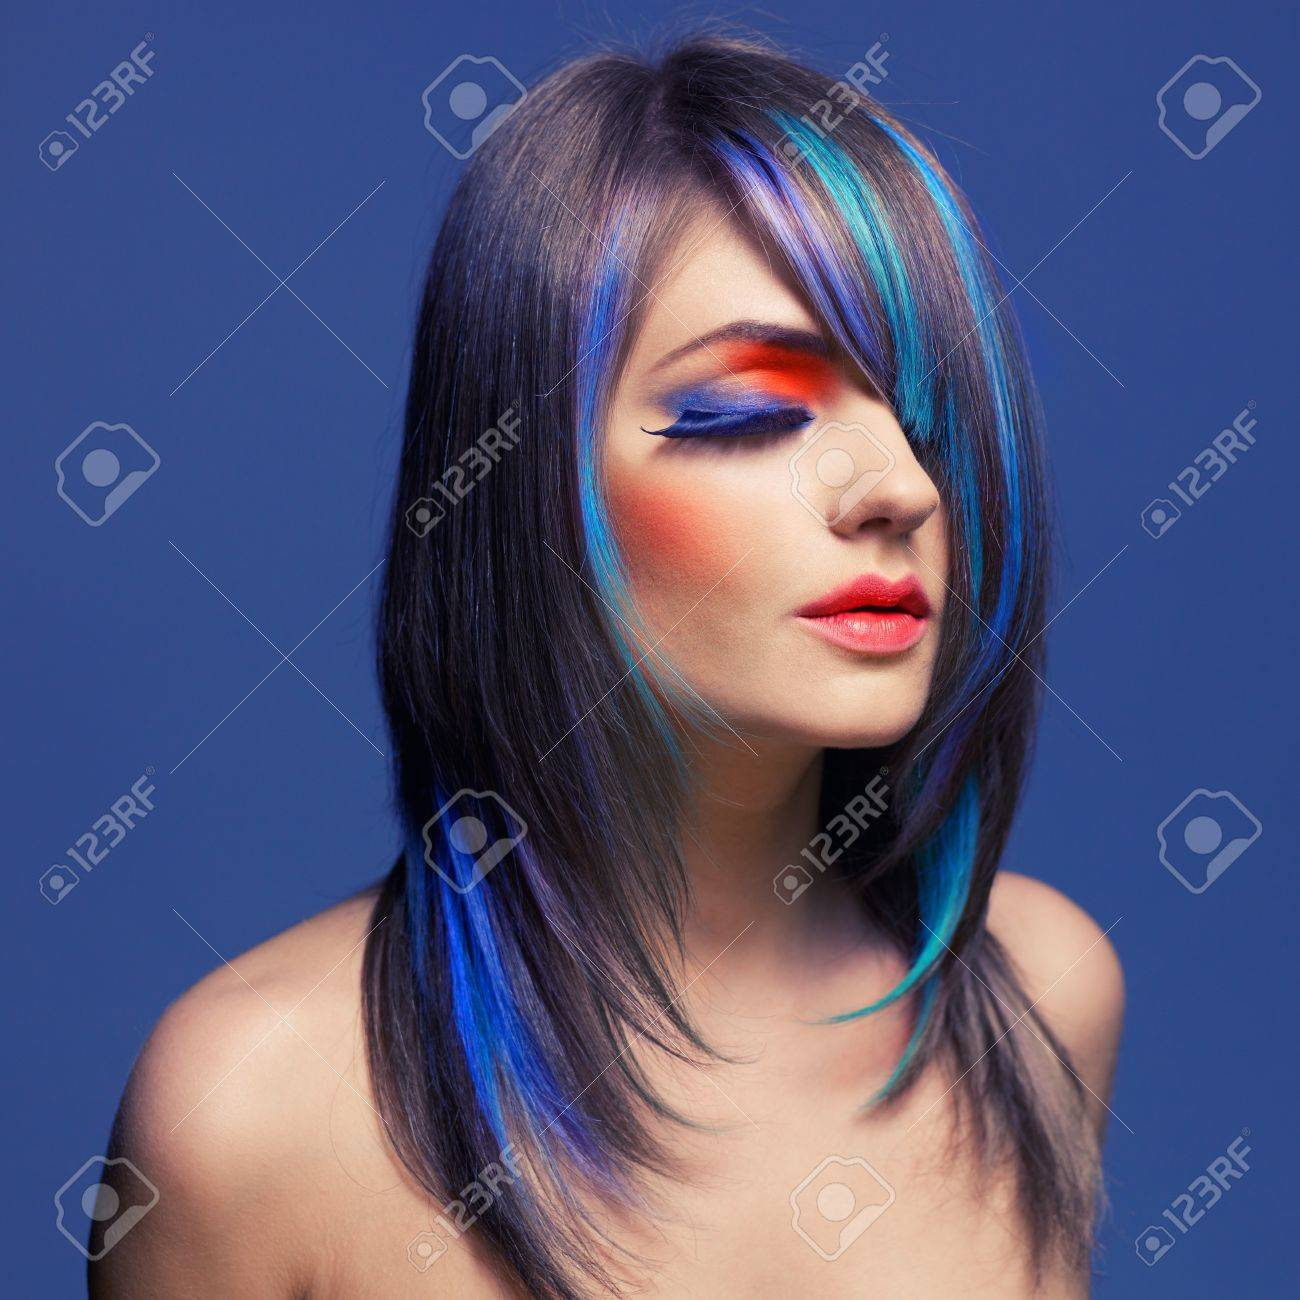 Photo of young lady with bright makeup on bright background Stock Photo - 14707102